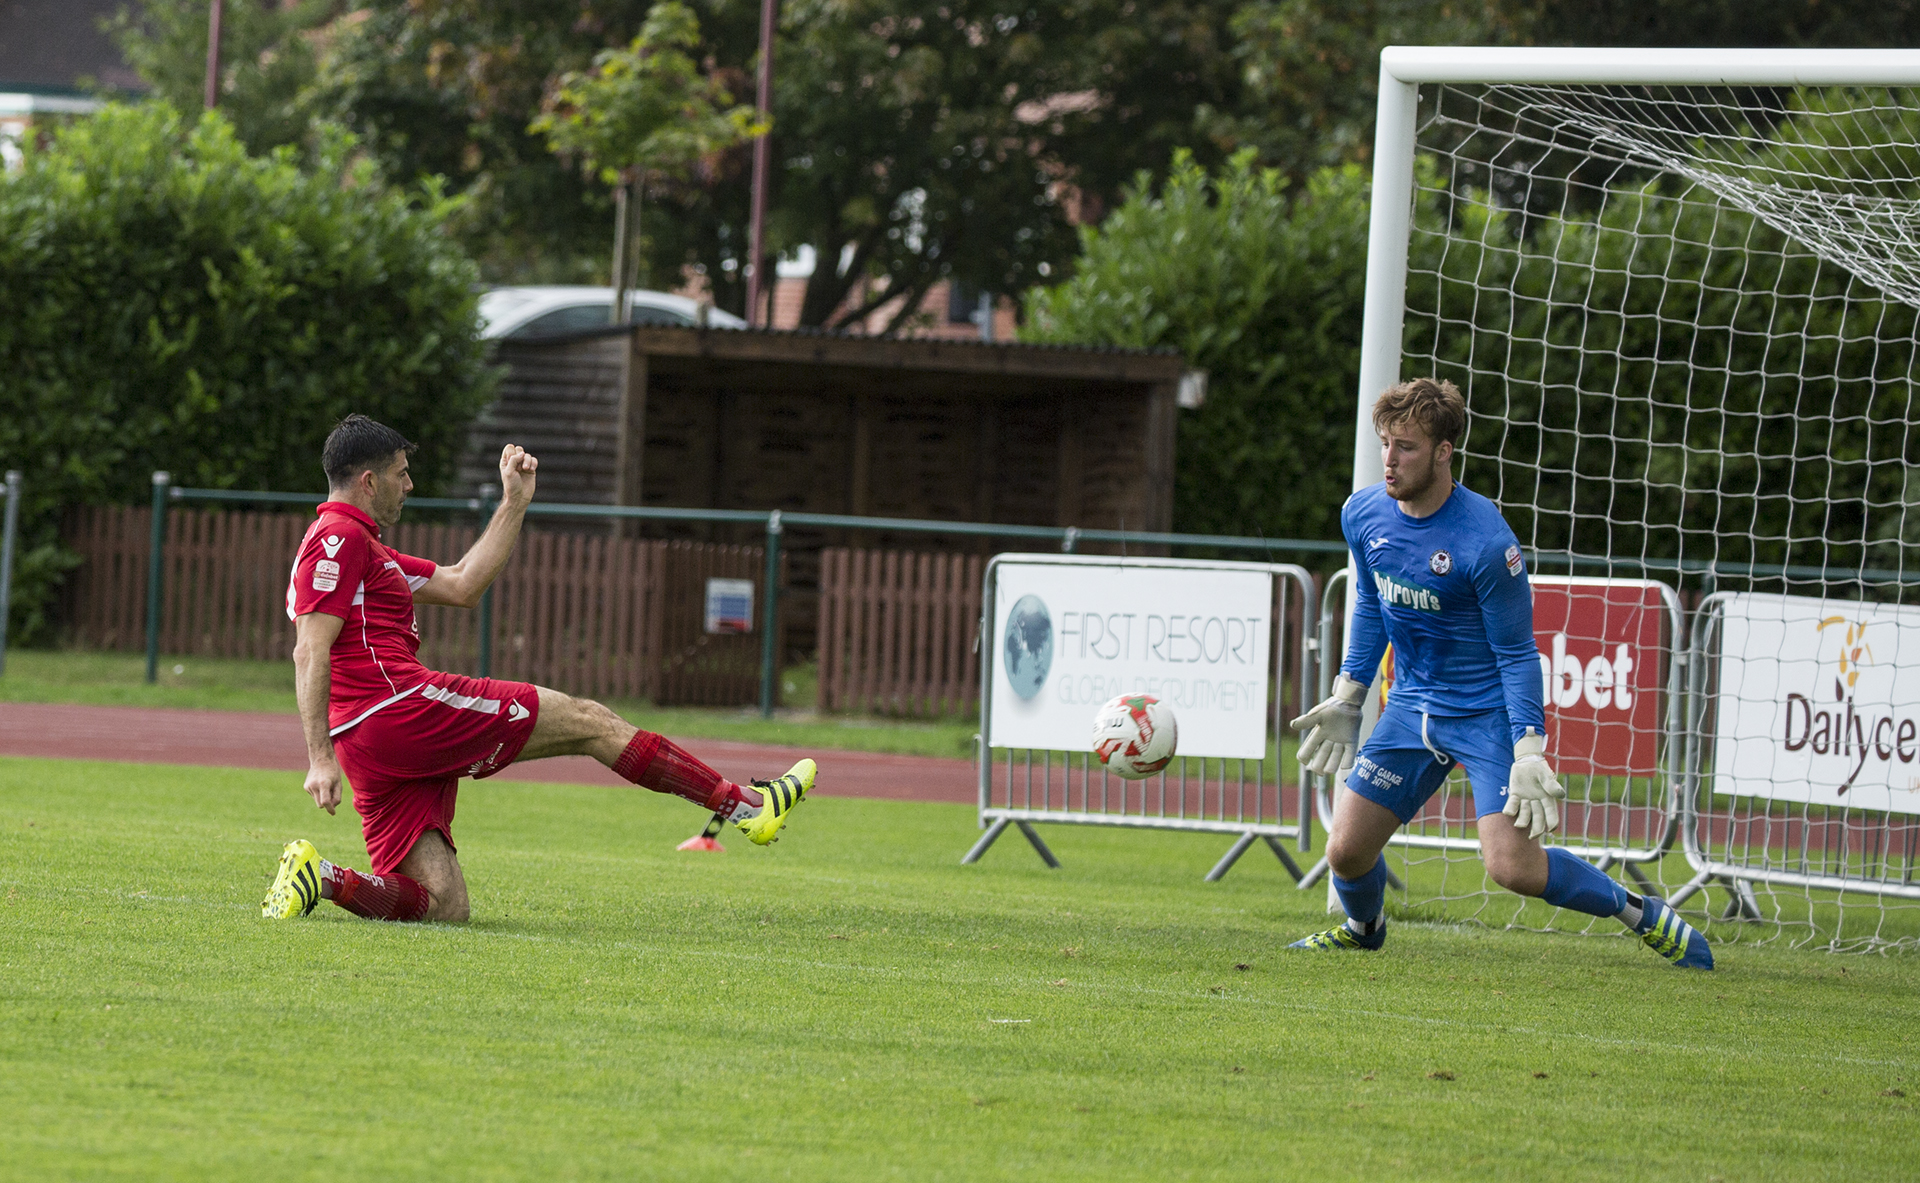 Michael Wilde sees his second half point blank shot saved by Alex Lynch in the Bala goal